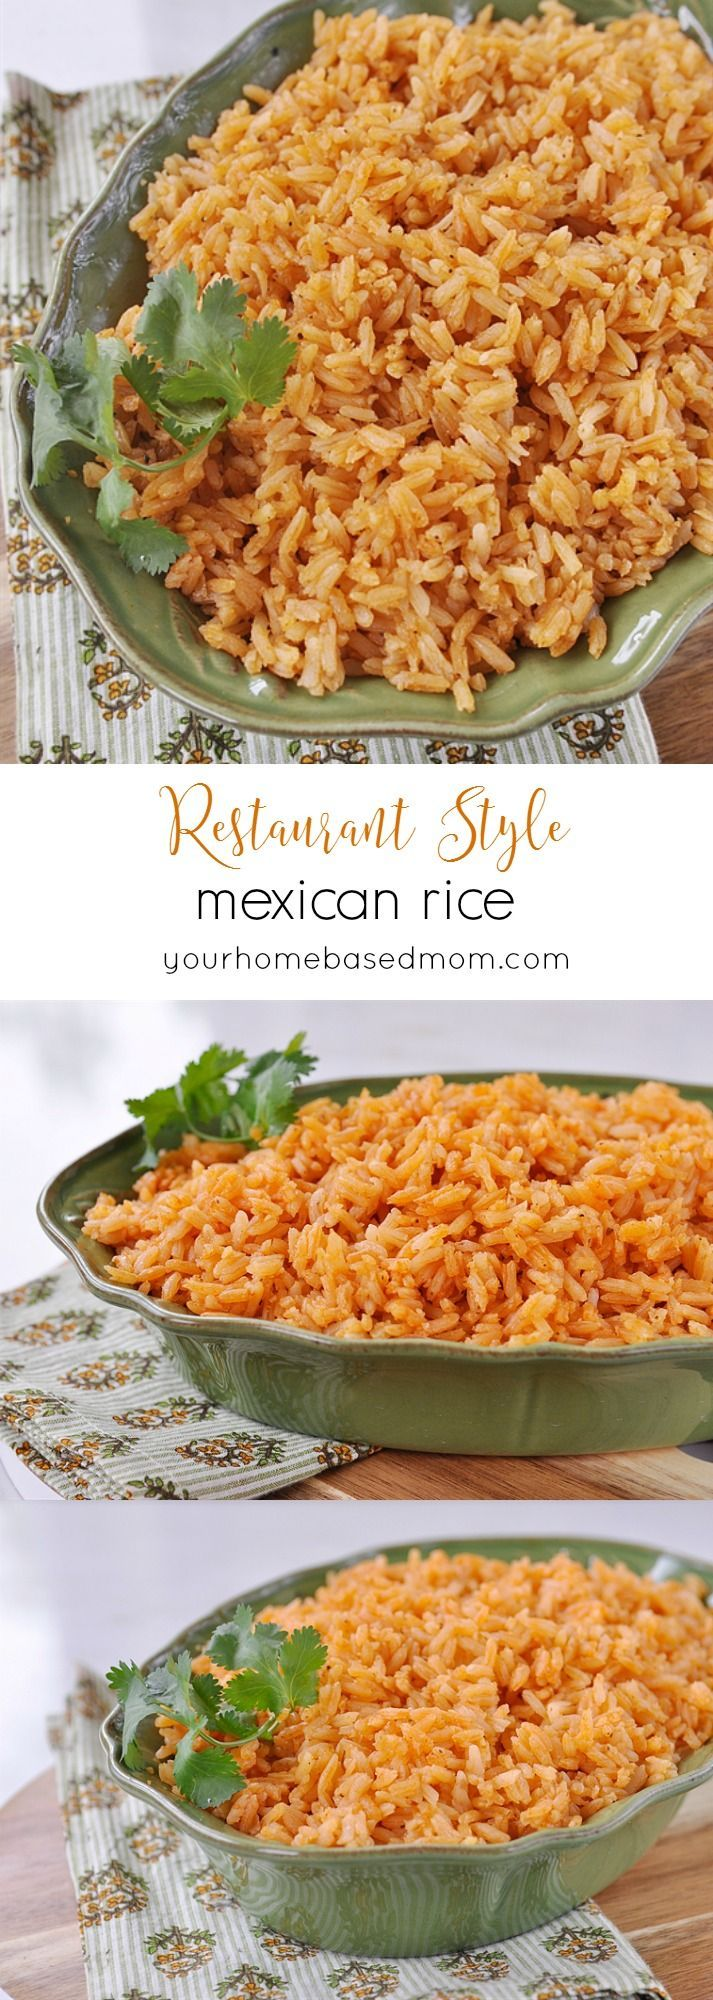 Restaurant Style Mexican Rice  - my kids thought it was better than what we usually get in the restaurant!